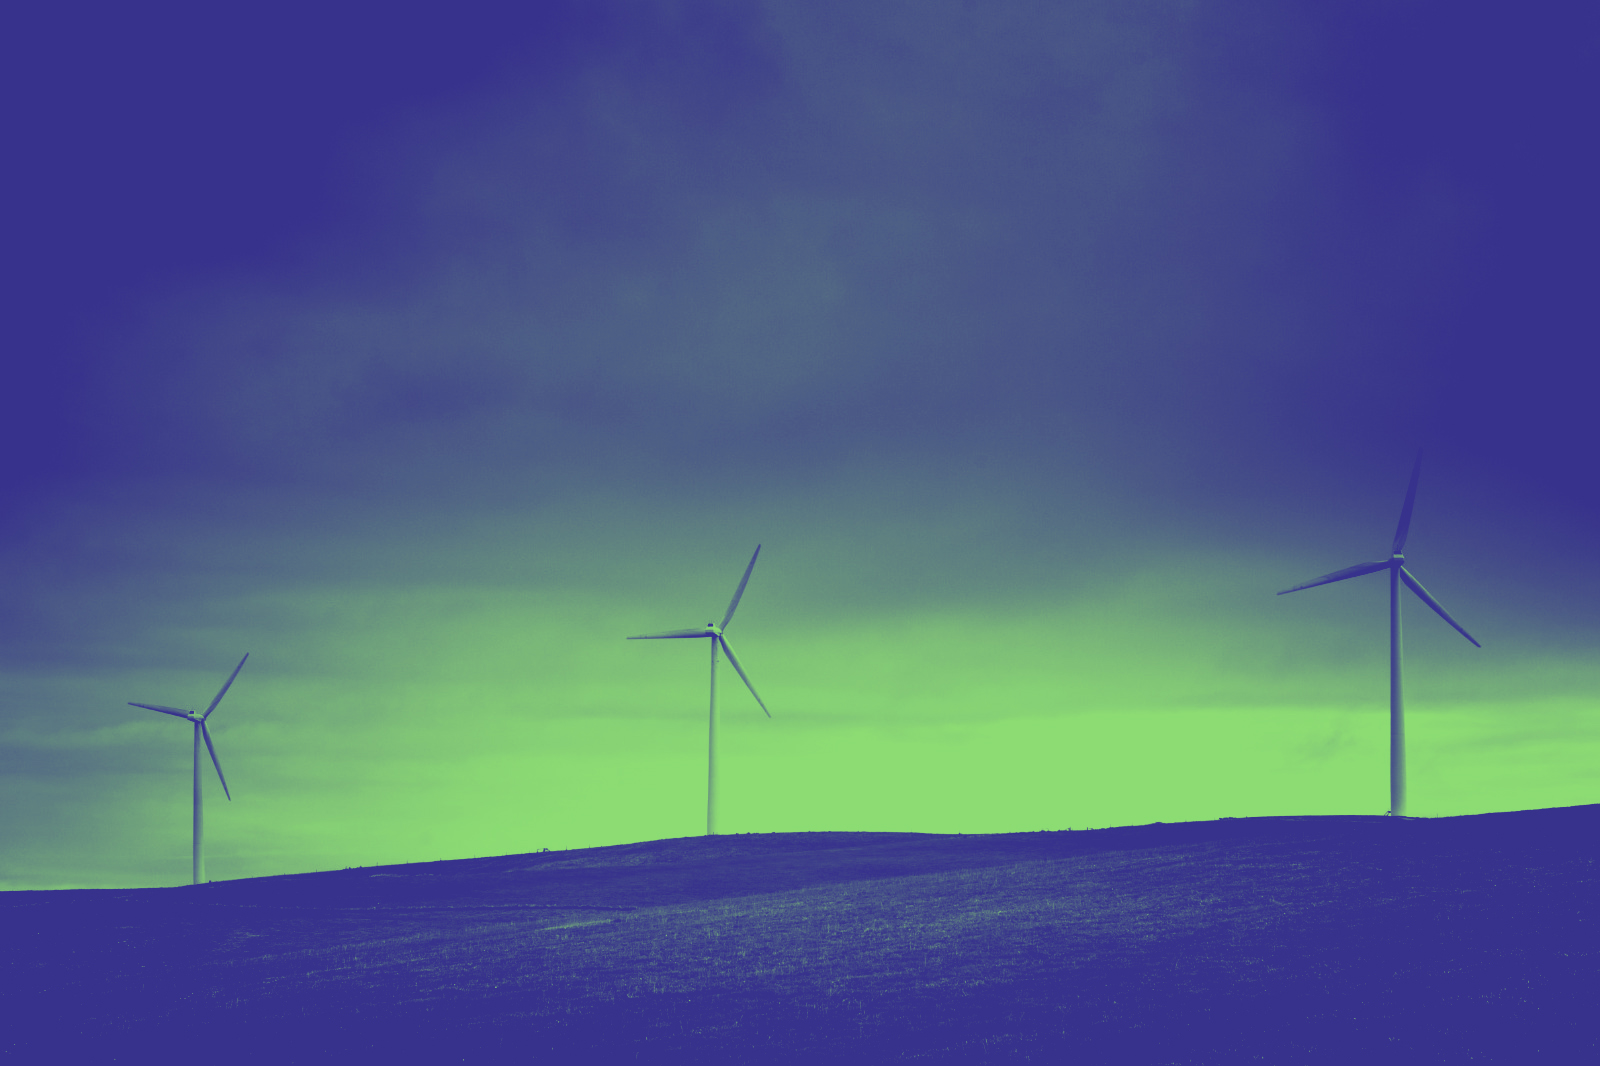 A photograph showing three wind turbines on a hill, colourised in green and blue